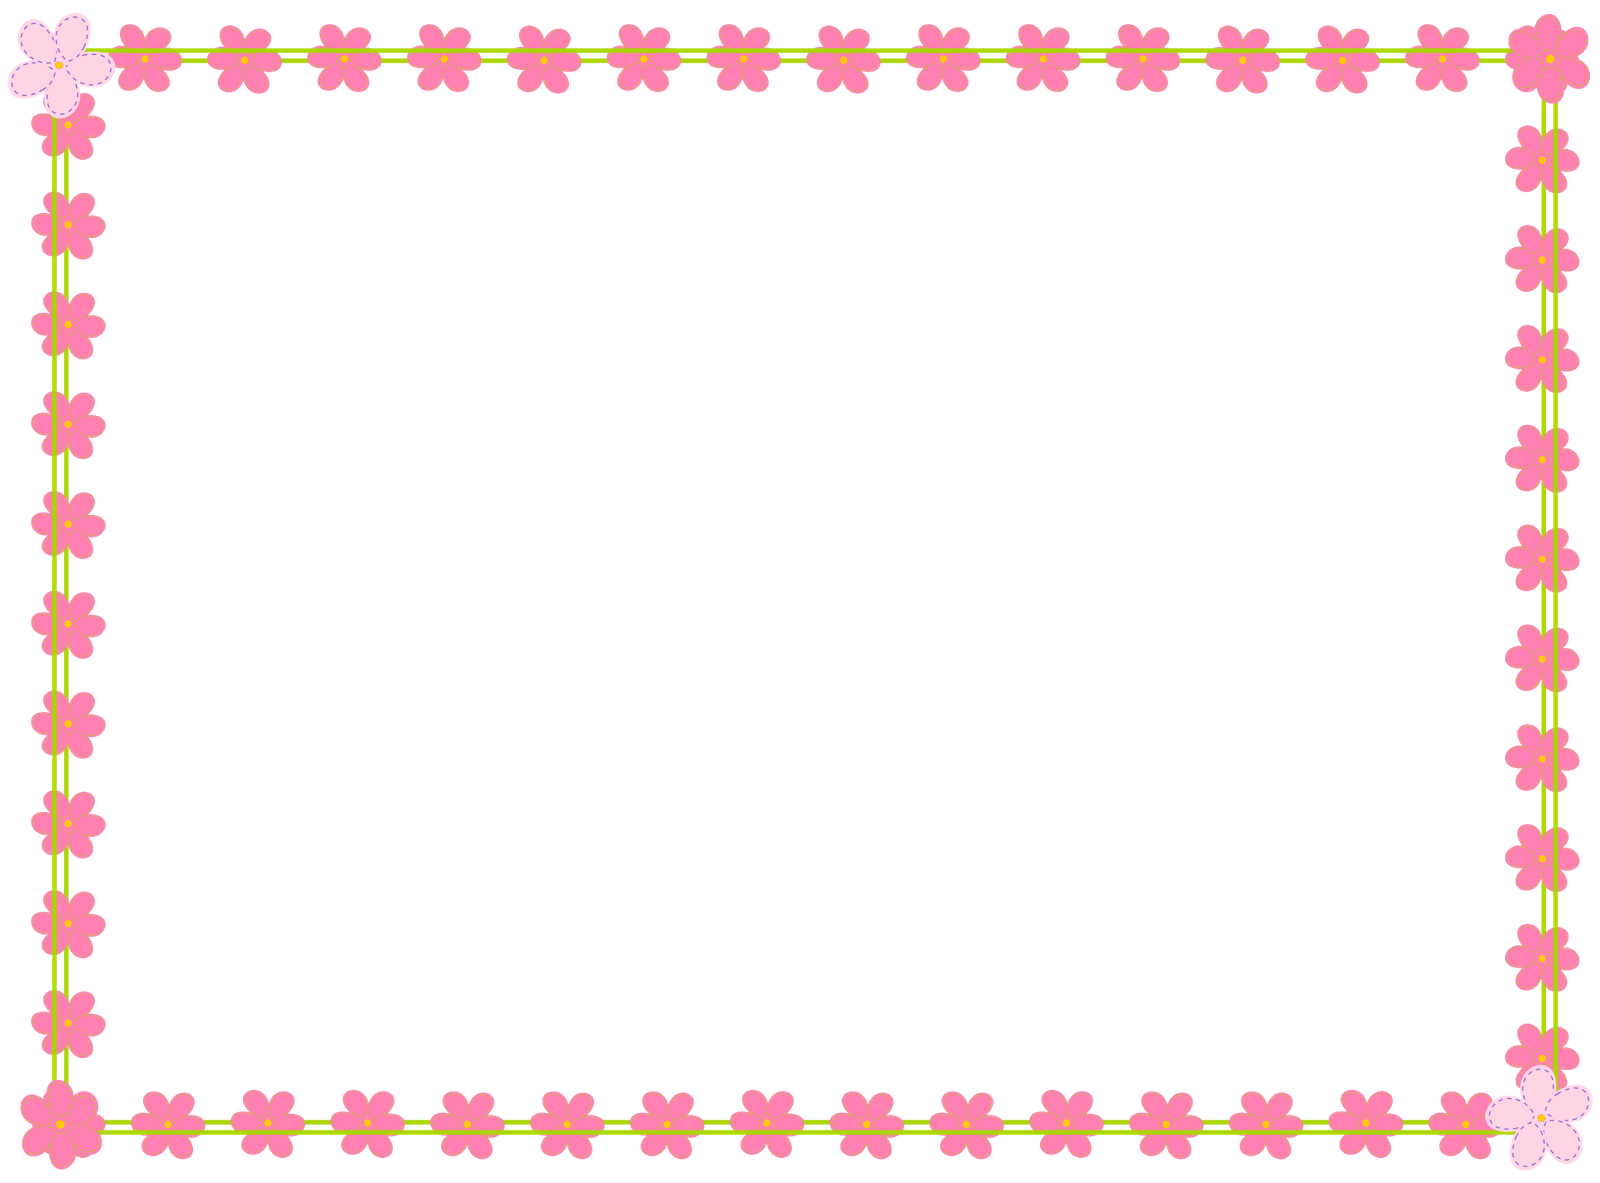 Birthday frames and borders png. Free download clip art